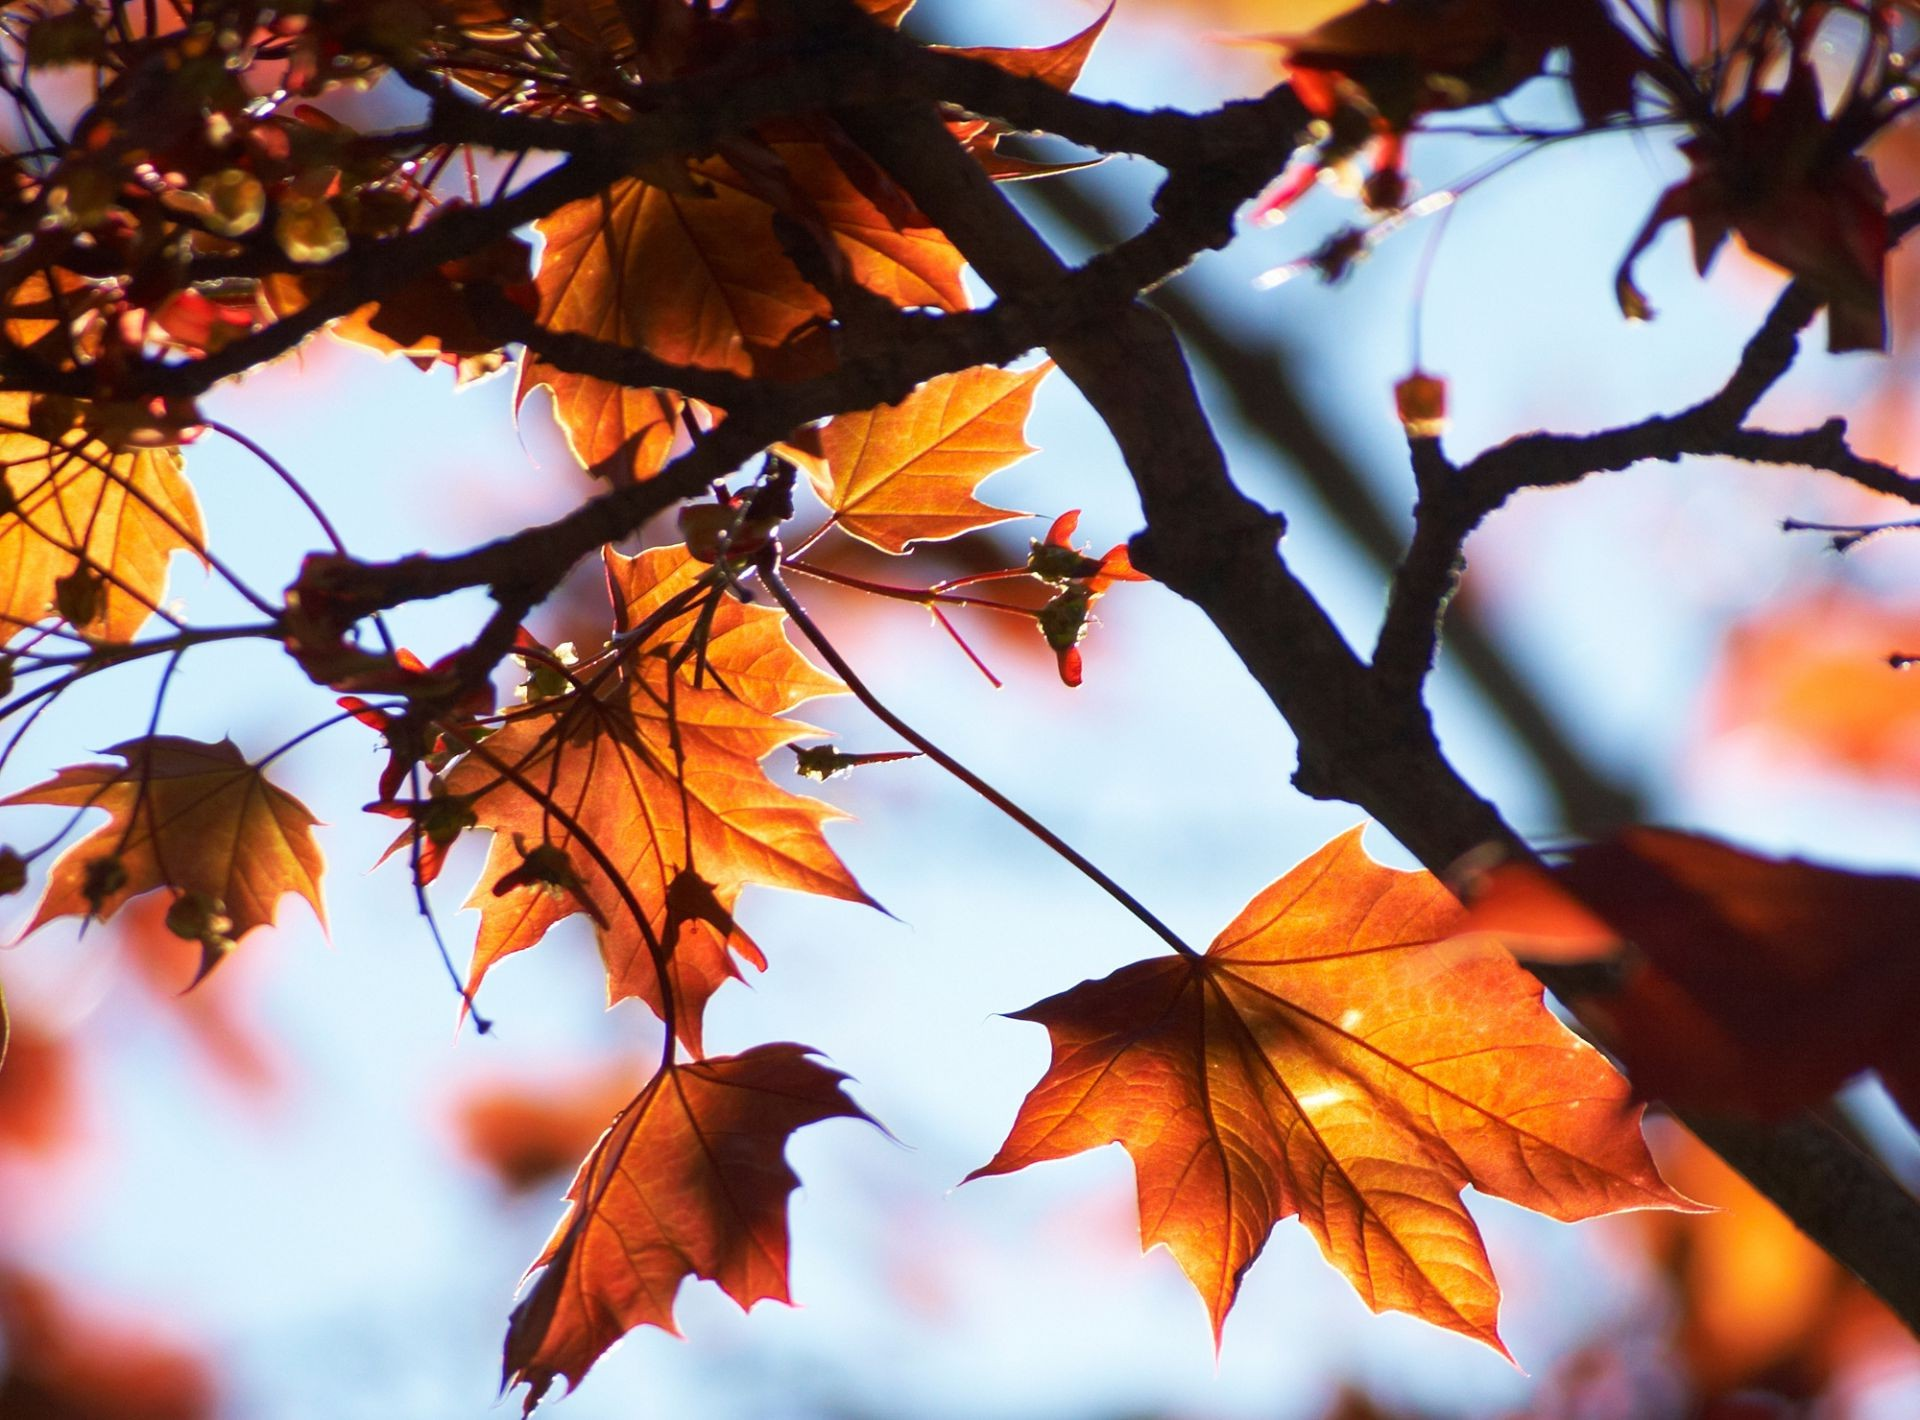 autumn light leaves of the Maple tree branches sky macro